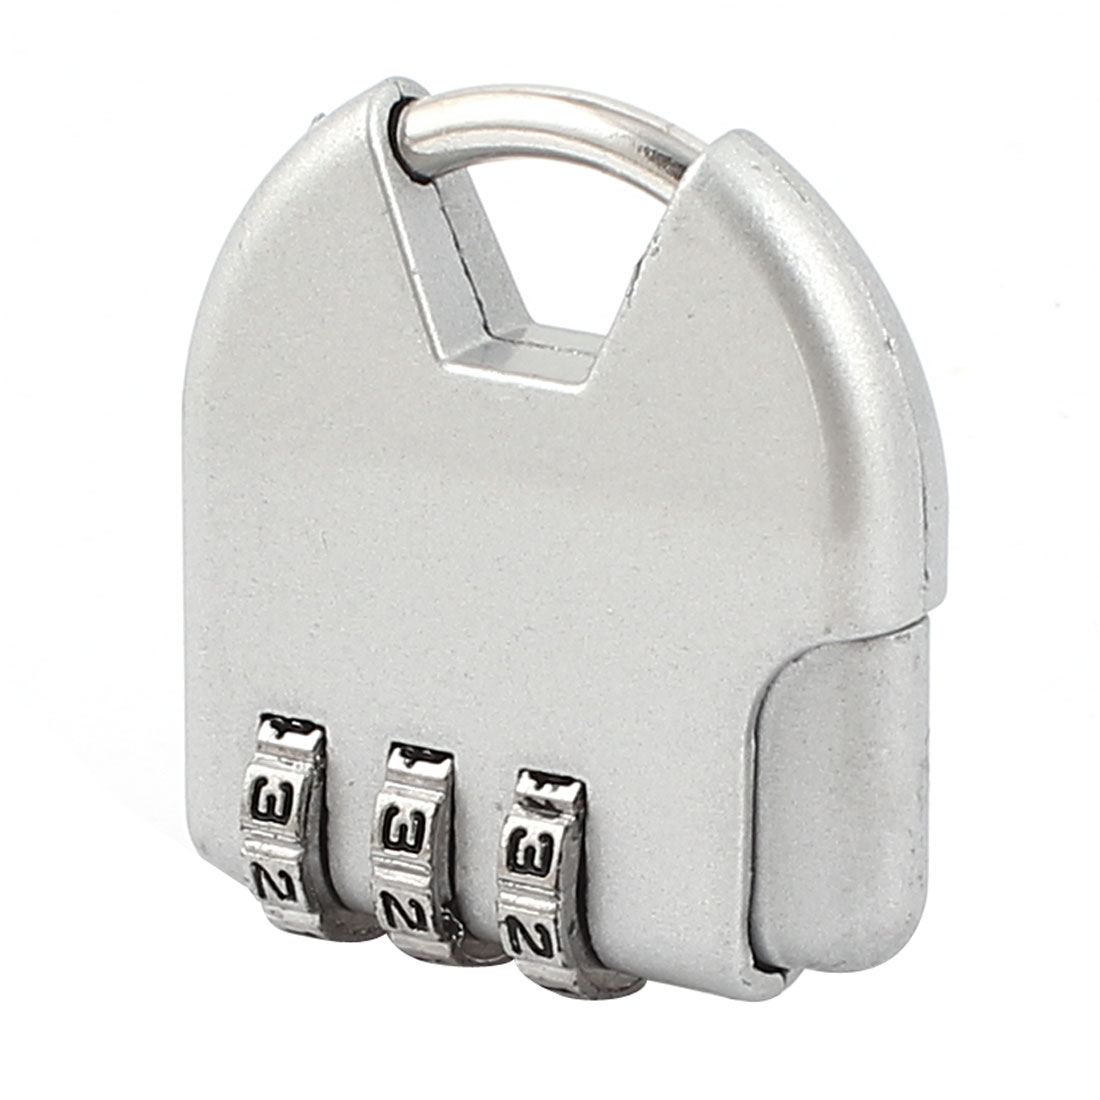 Silver Tone 3 Dial Digitals Password Combination Luggage Safety Padlock Lock